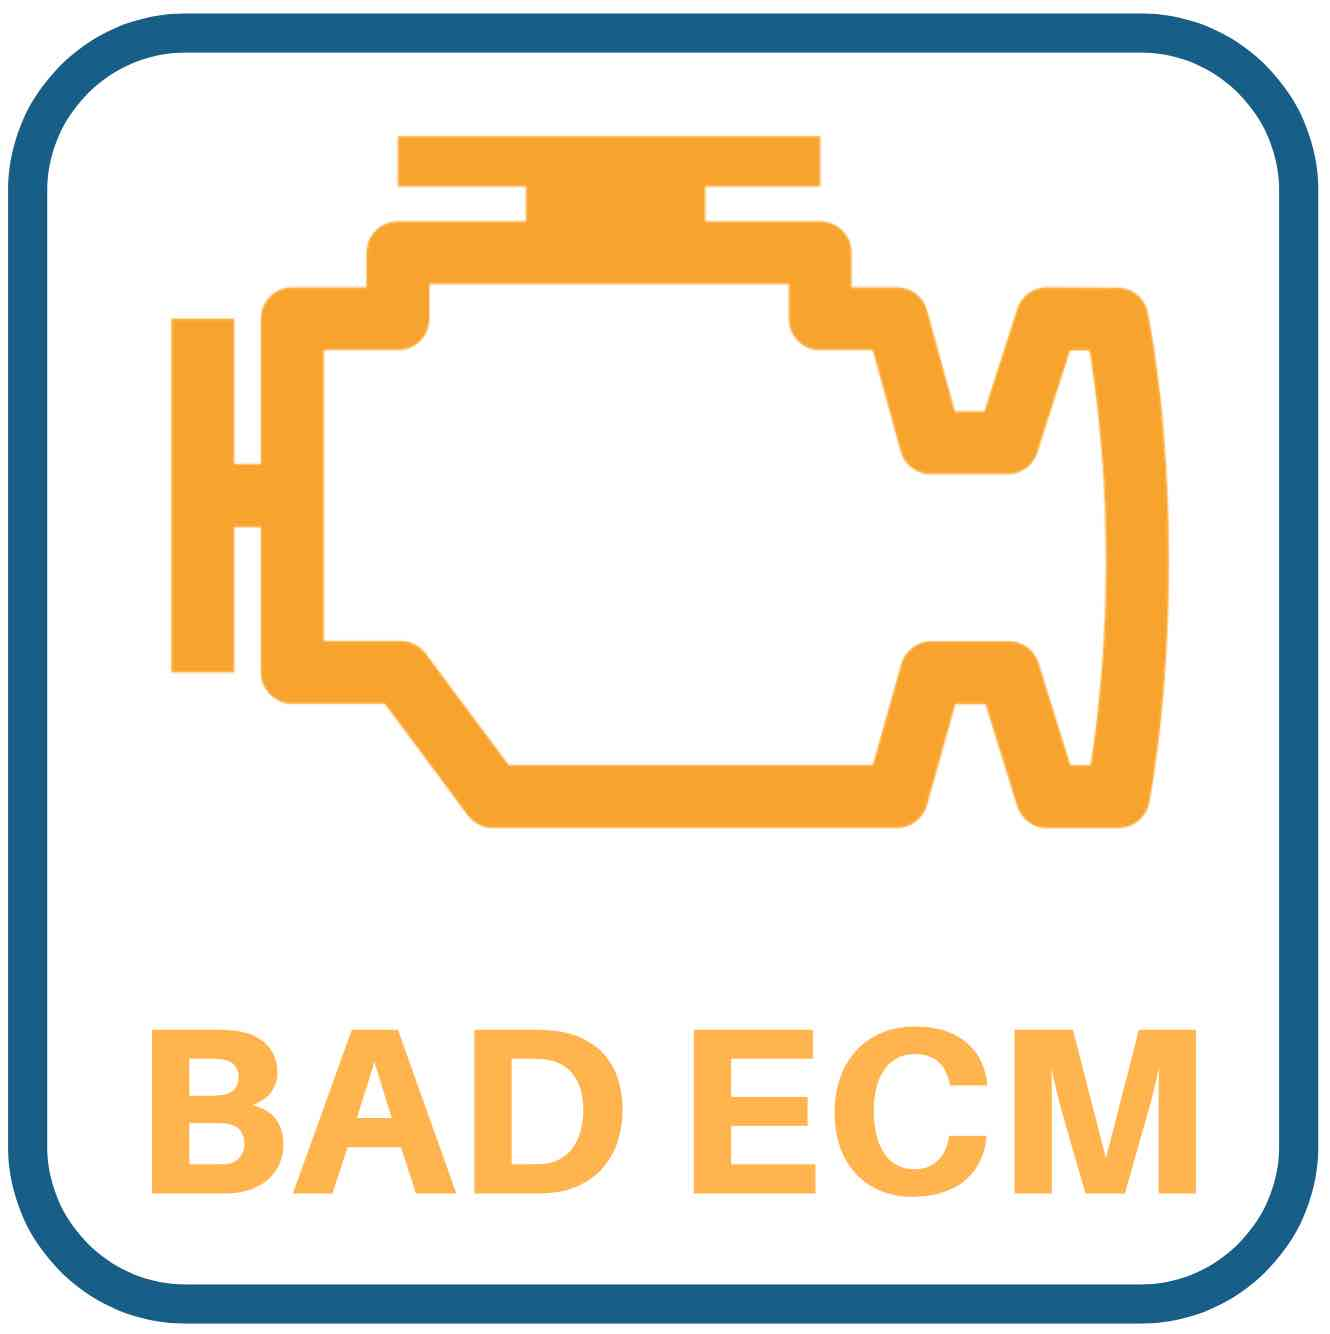 Fiat 500 Bad ECM Symptoms